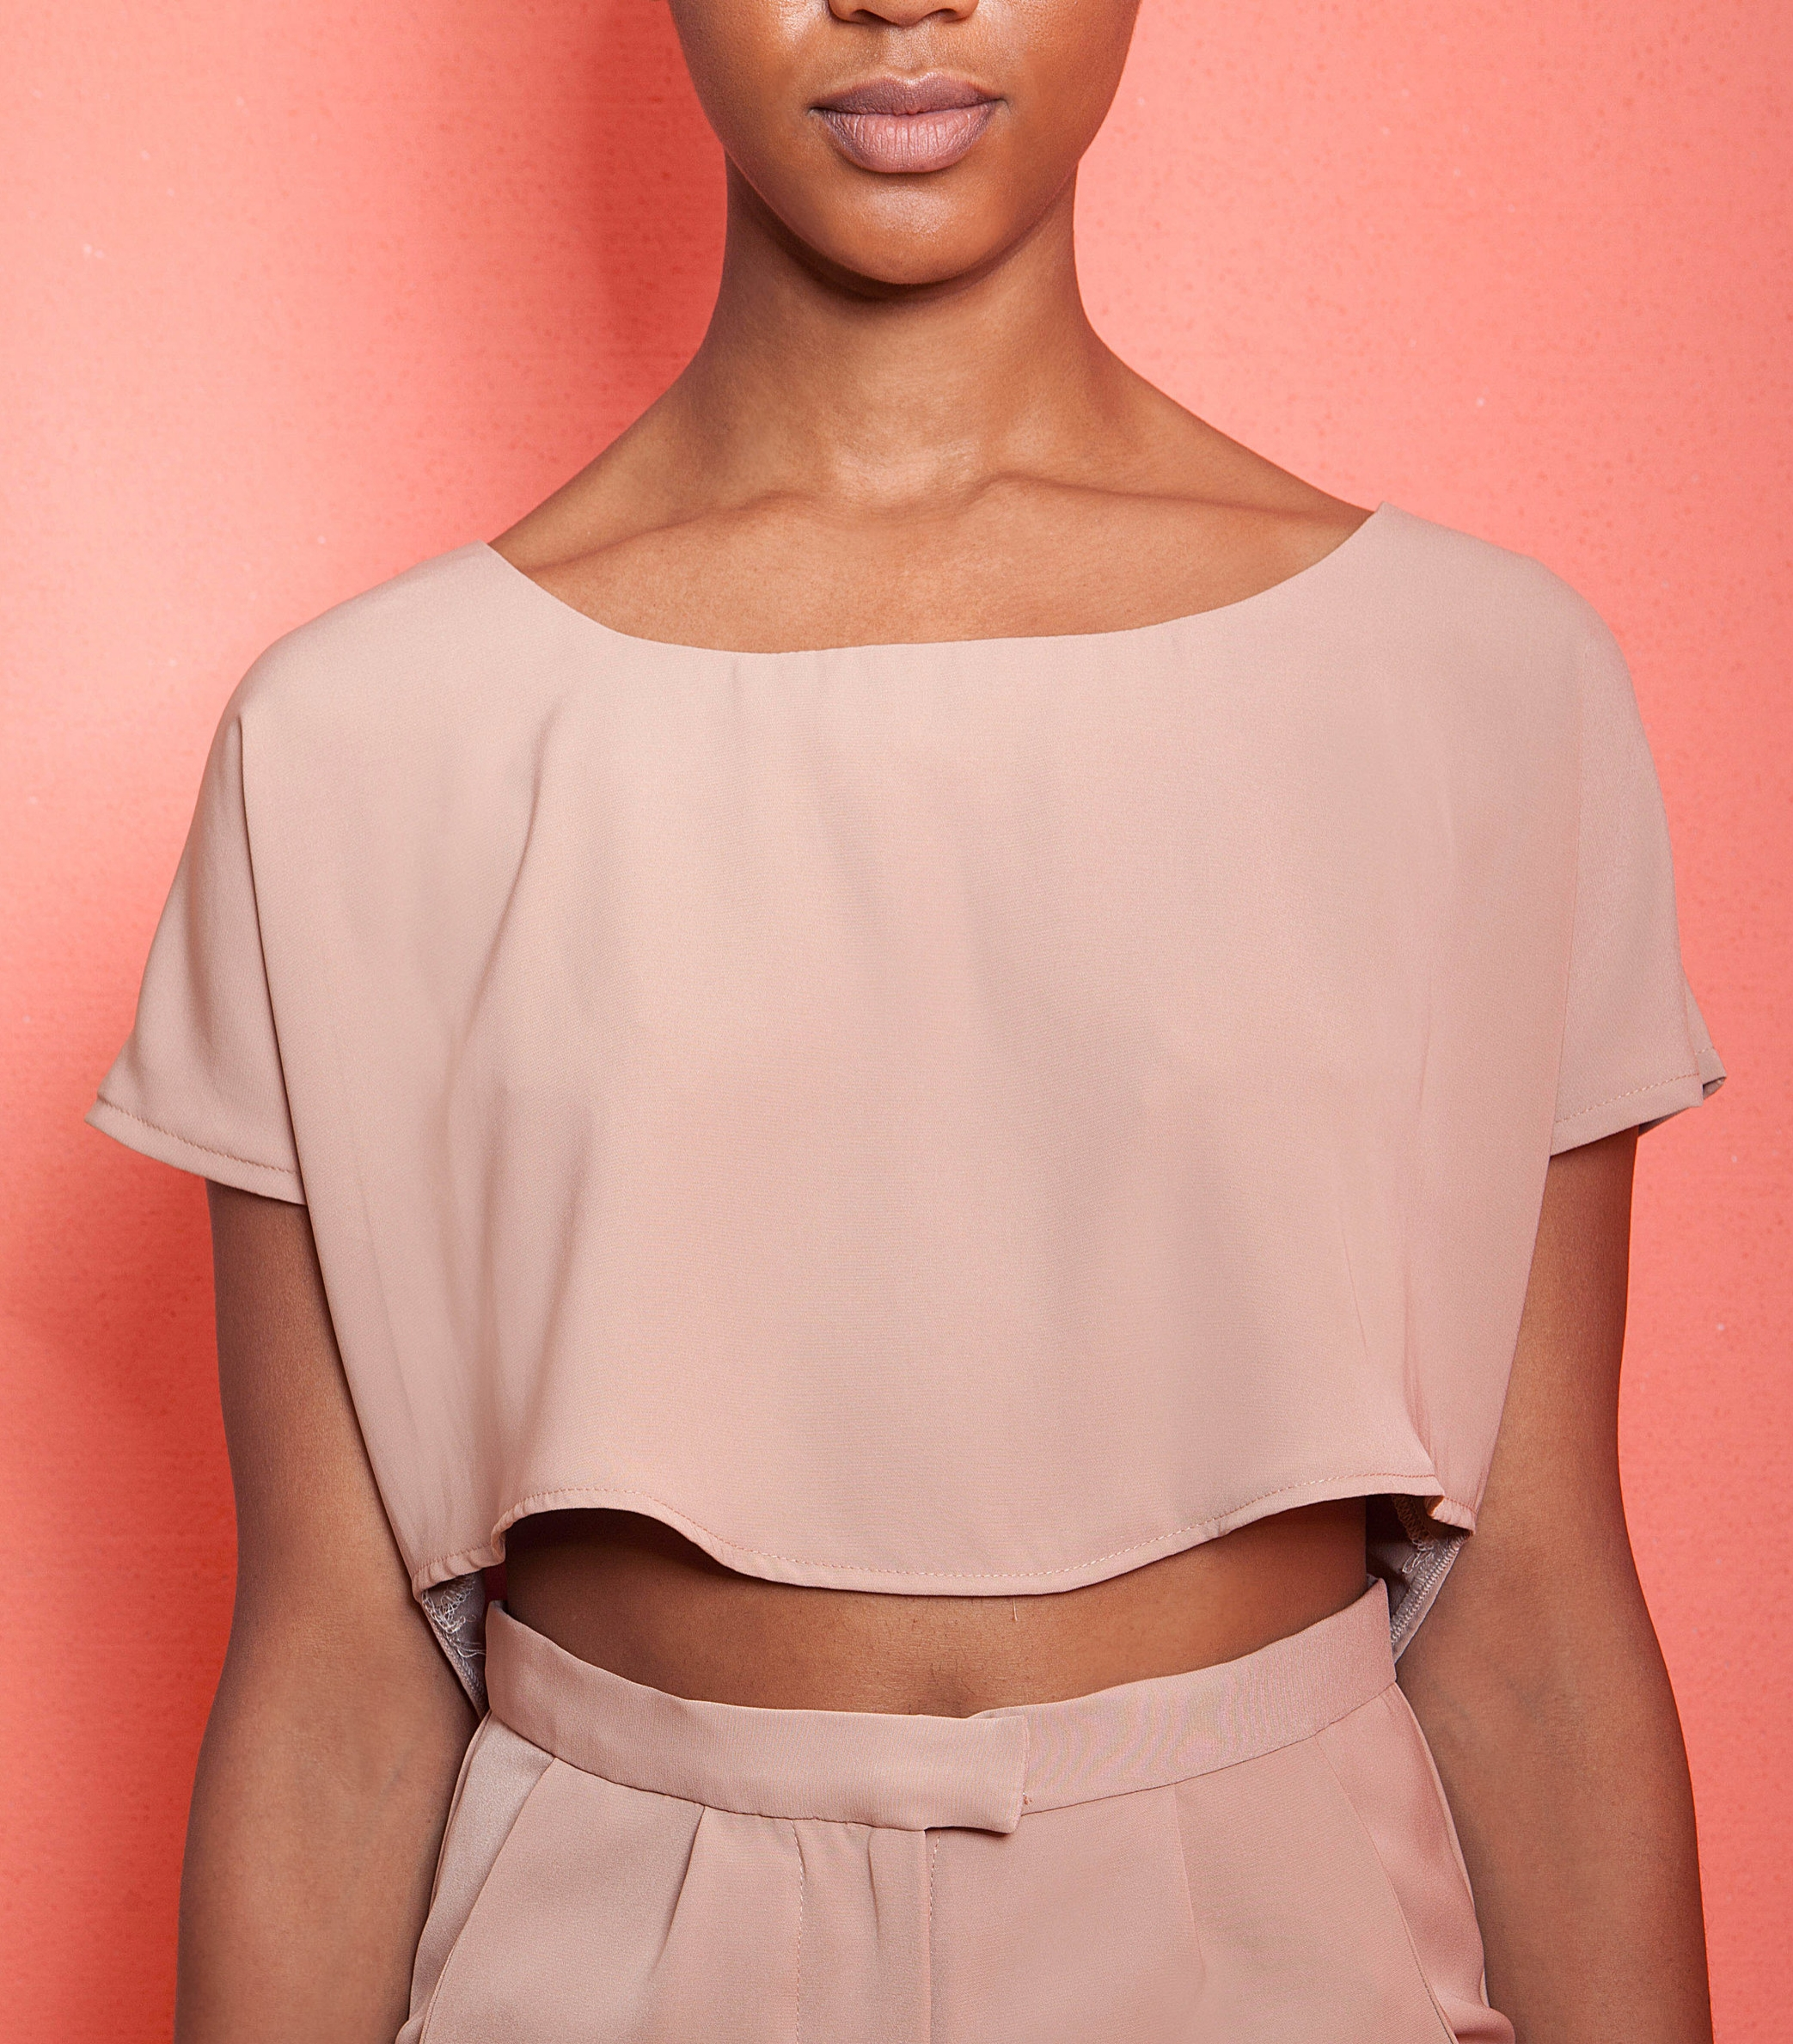 Easily Chic Top - Be chic without the hassle...